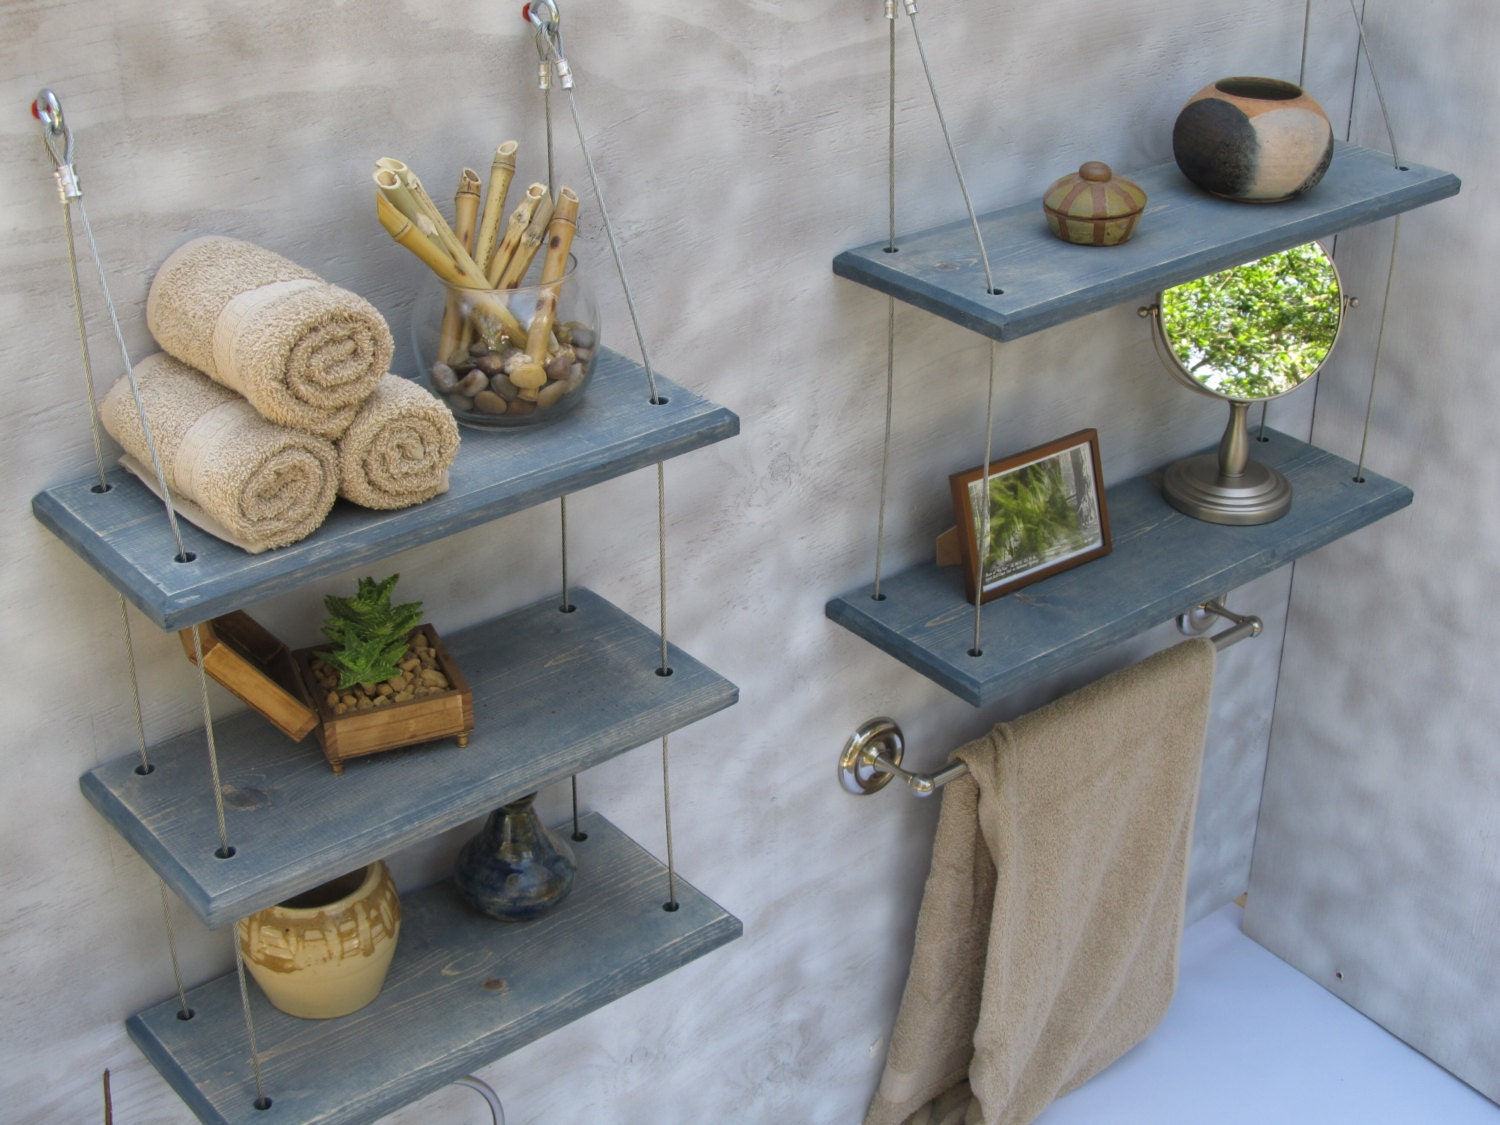 Popular items for bathroom shelves on Etsy